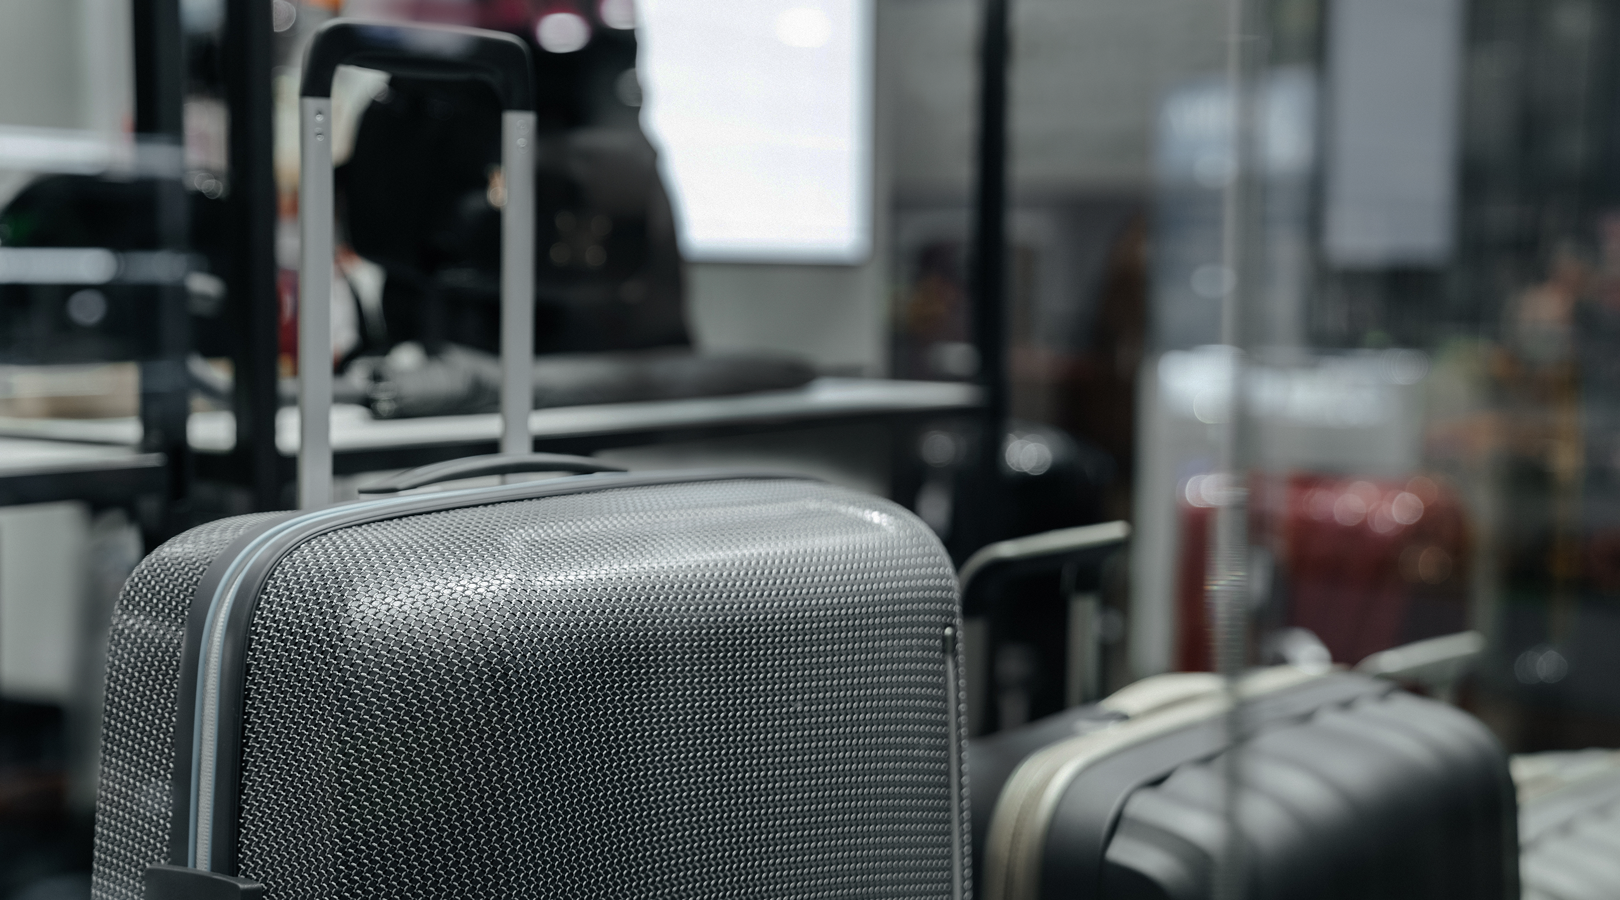 Shipping Luggage: How to Ship Luggage Safely